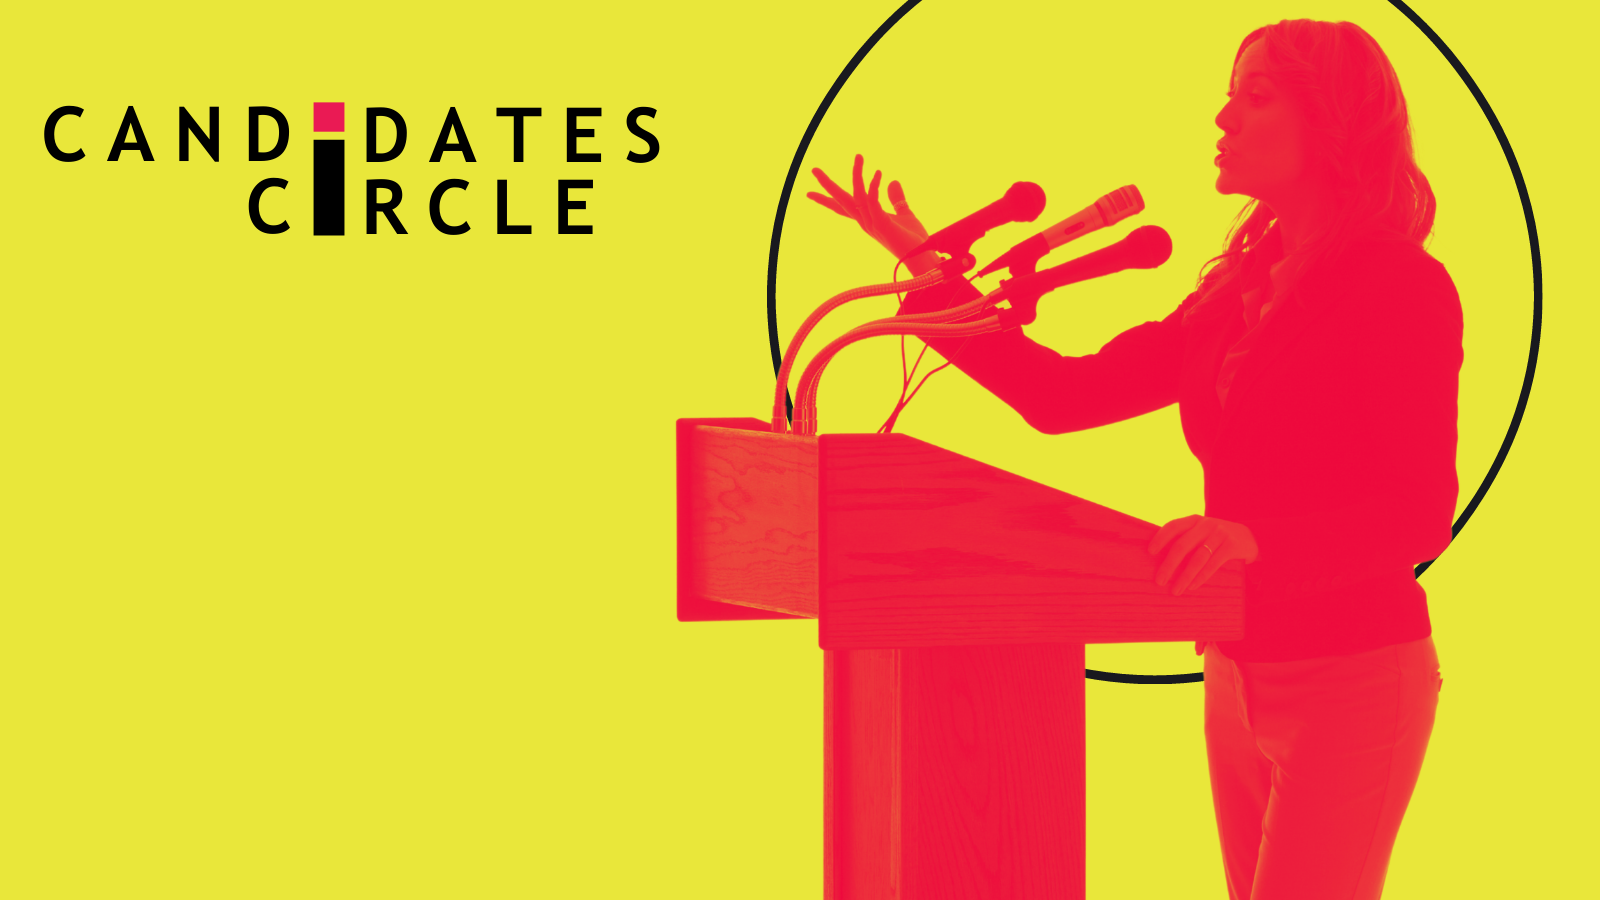 Are you running for office in 2021? Join the Candidates Circle.